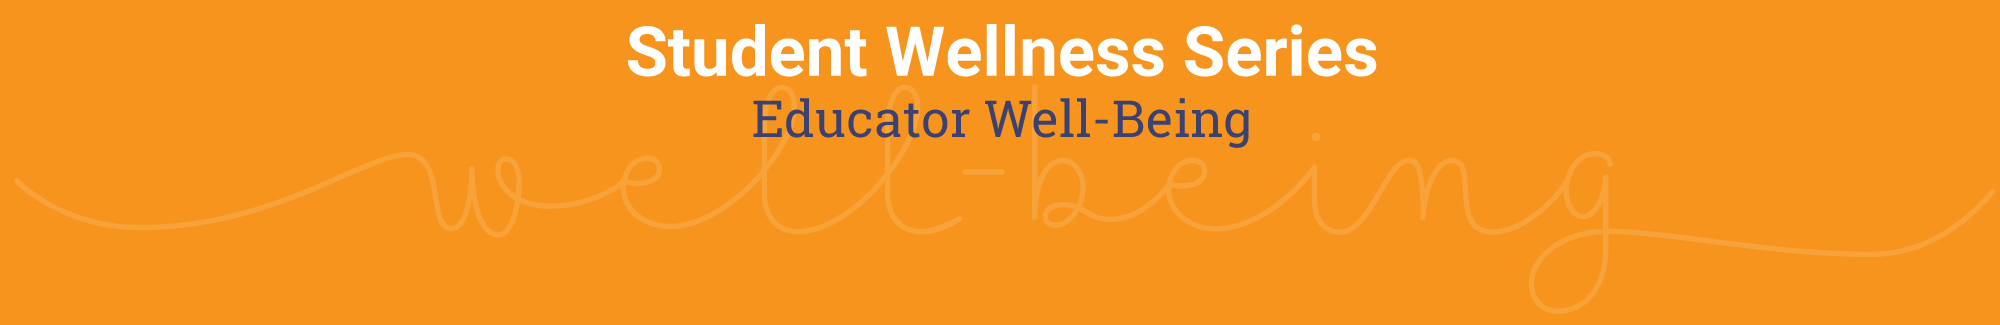 Student Wellness Series - Educator Well-Being